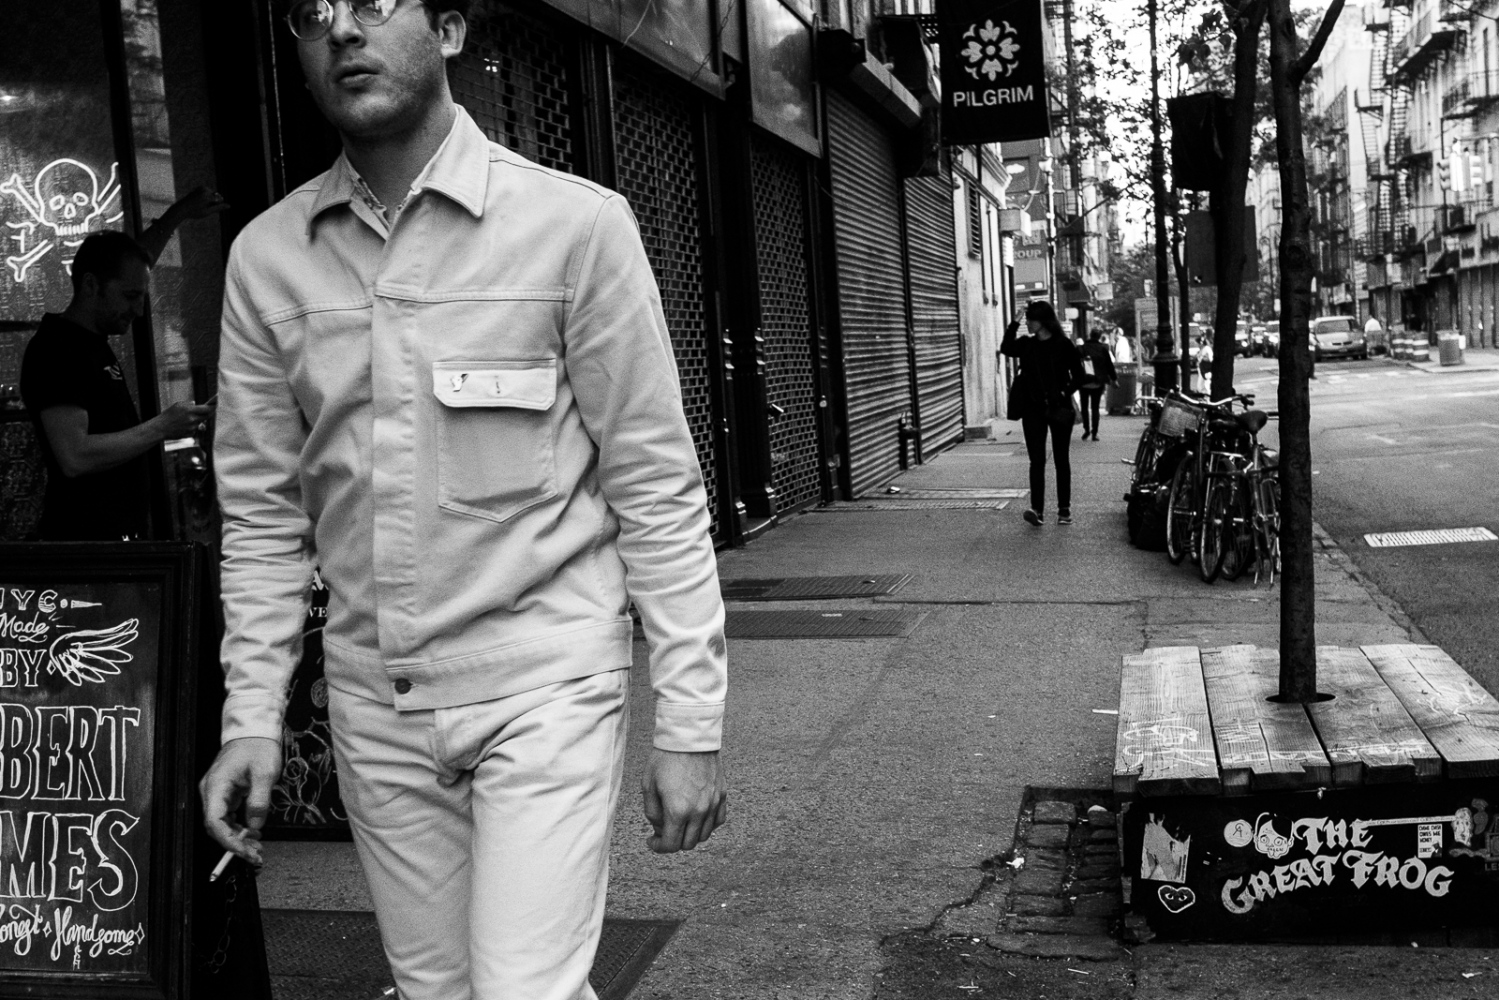 All White and Smokin', Lower East Side, NYC